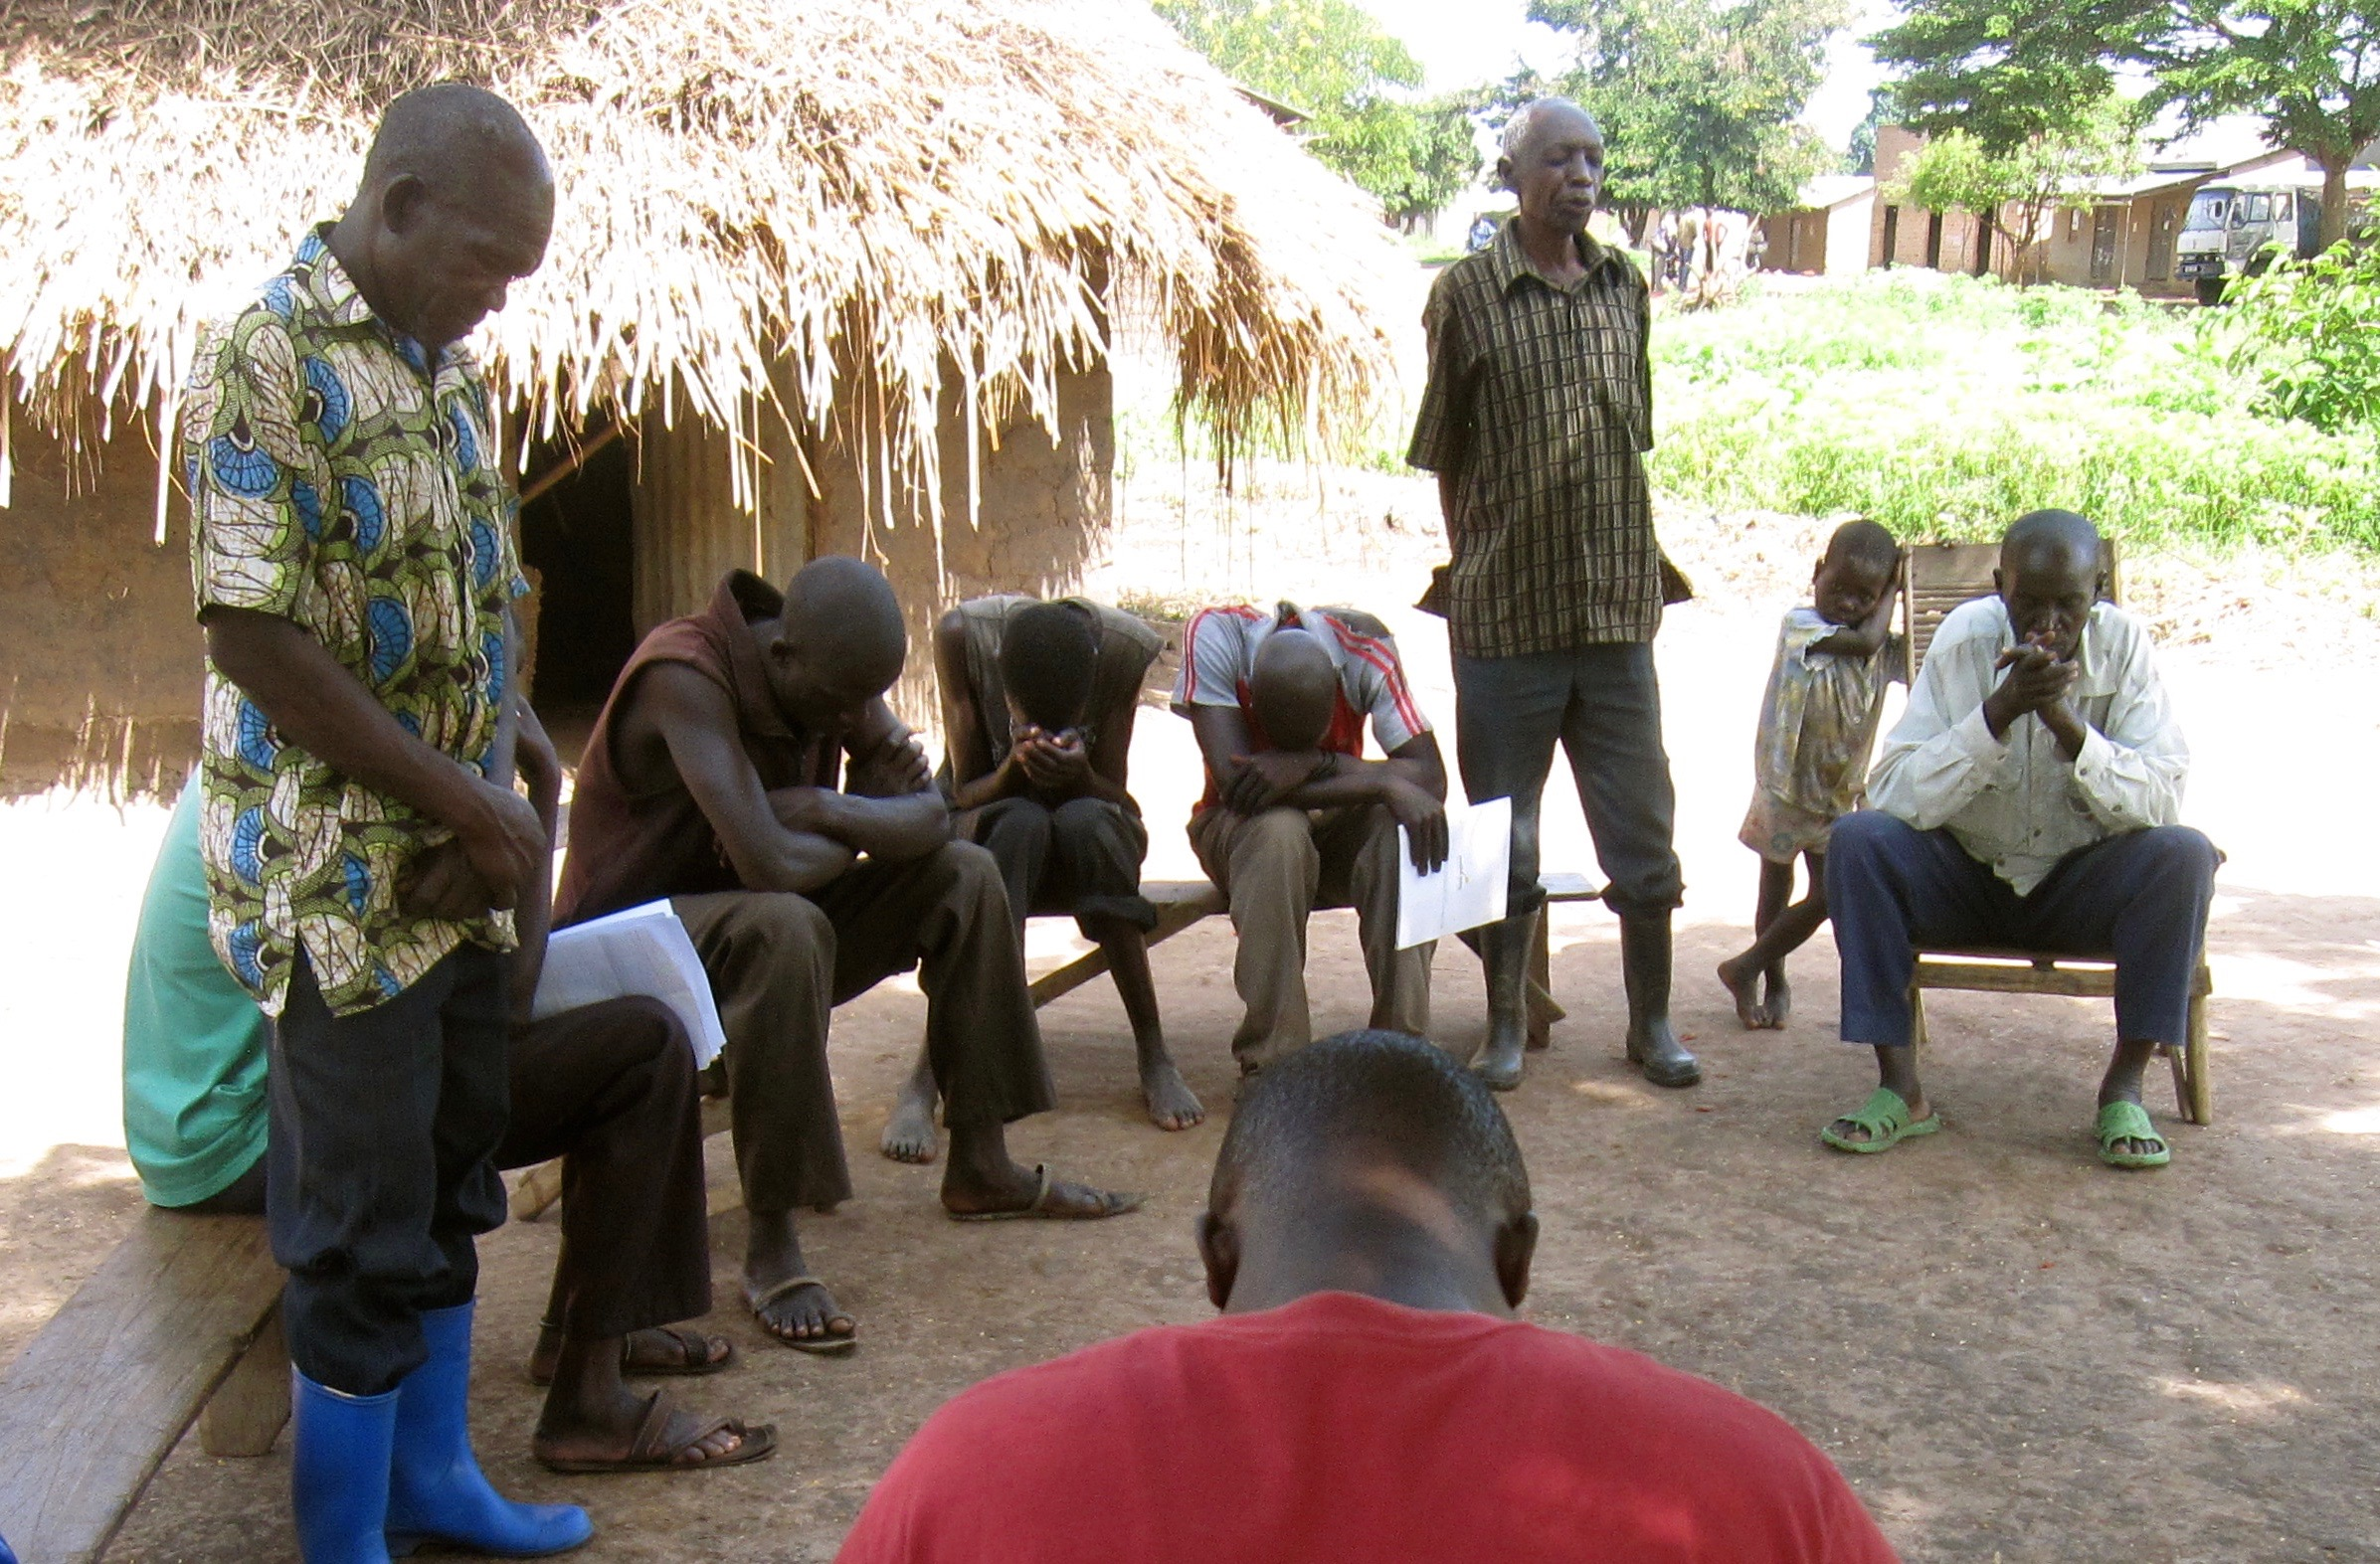 Step 2: Water Committee   Tukutana staff form a water committee comprised of church and local leaders. The committee meets regularly to pray for the well and its users, and to ensure the well is being properly maintained. The group also resolves any conflicts surrounding the water source.